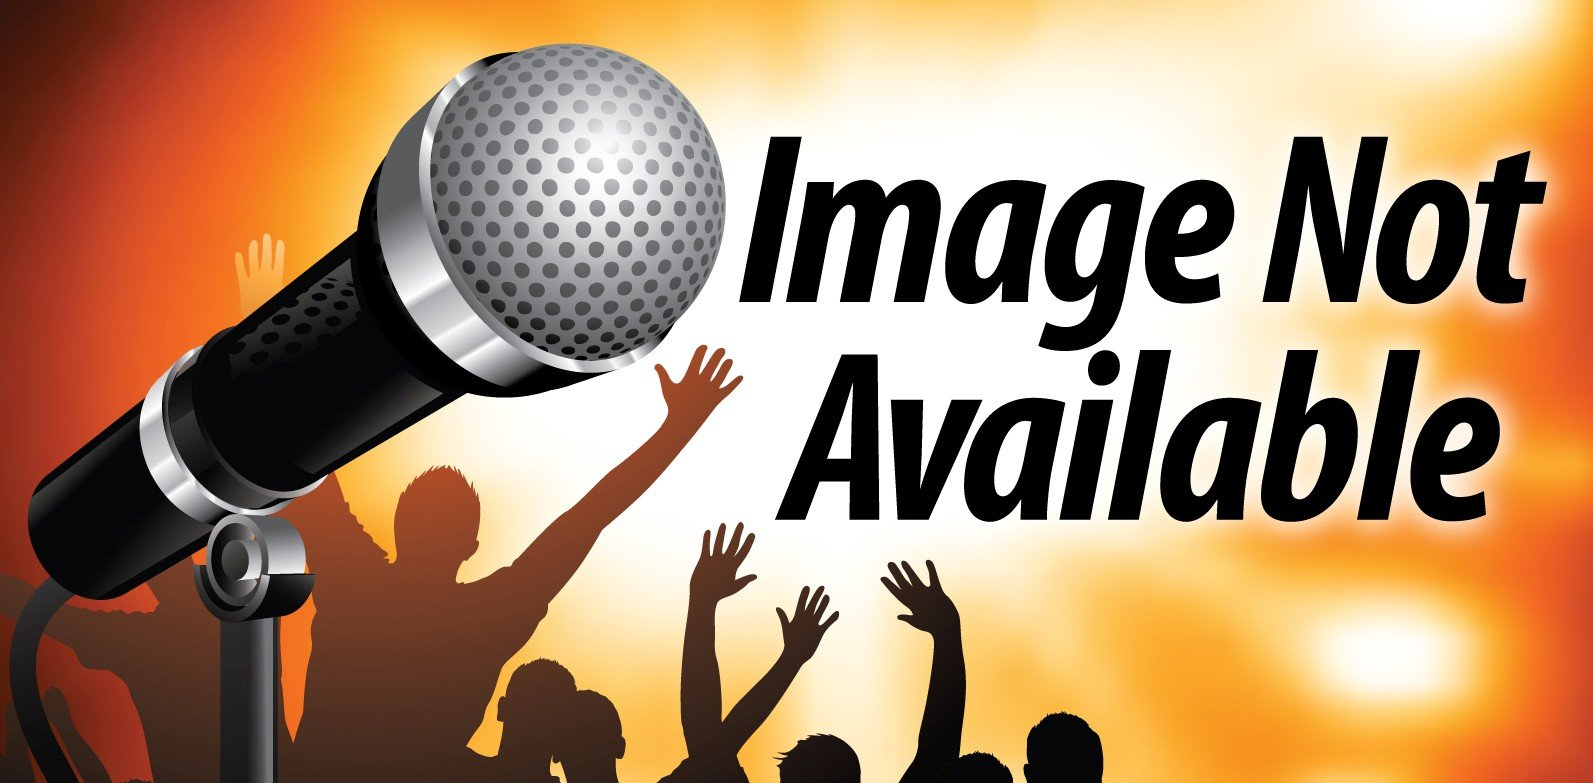 Entertainment - Image Not Available